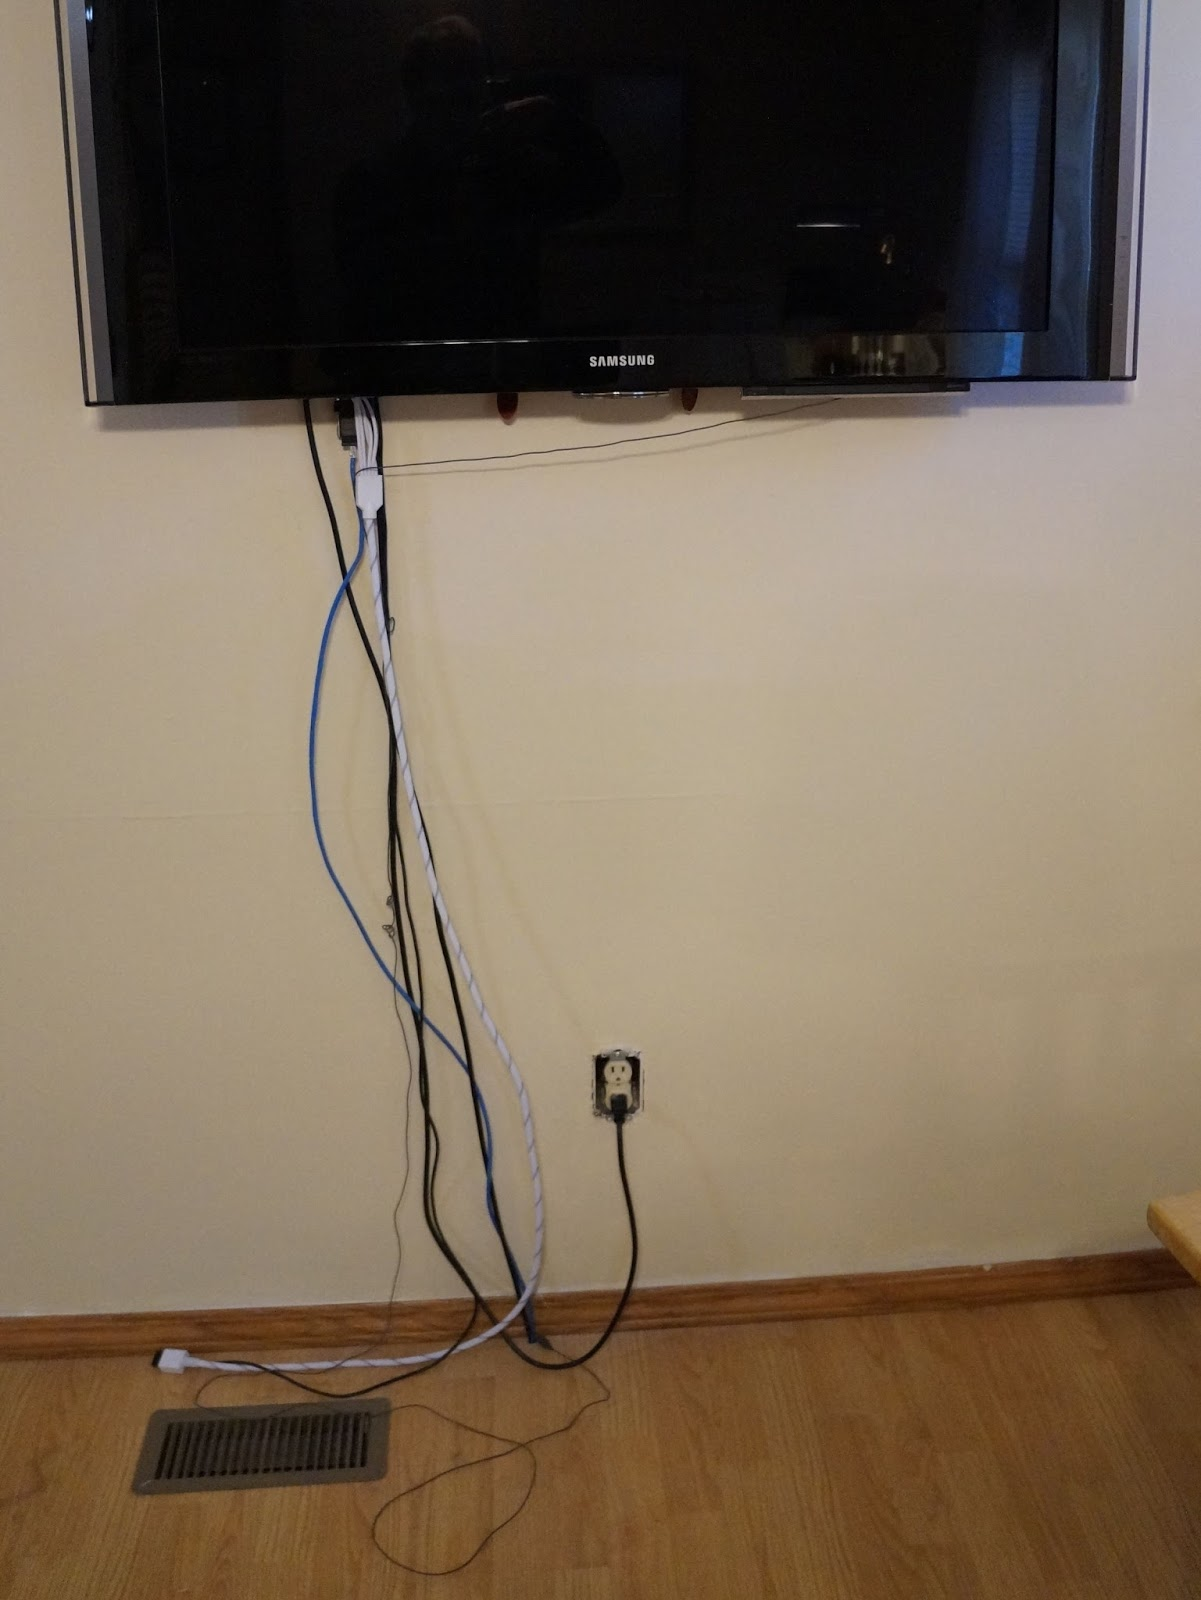 Wall Mount Tv Electrical Wiring Web About Diagram Kit My Commentary And Technical Help How To Hide Wires Going A Rh Bobdavis321 Blogspot Com Cables Mounted Ideas